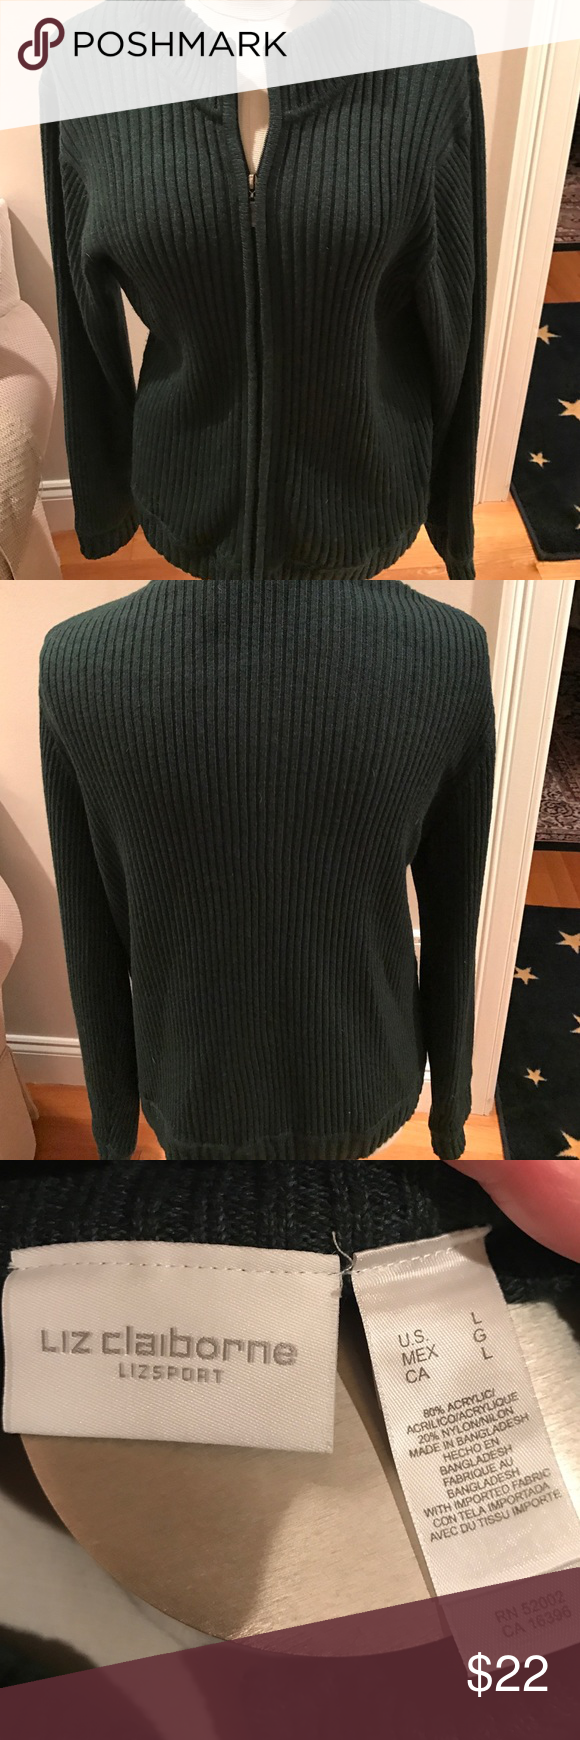 """Liz Claiborne Lizsport Hunter Green Size L Sweater Liz Claiborne Lizsport 80% Acrylic, 20% Nylon Hunter Green Sweater with Zipper Closure. Approx 21"""" across bust and 25"""" from collar to bottom of hem. Liz Claiborne Sweaters Cardigans"""